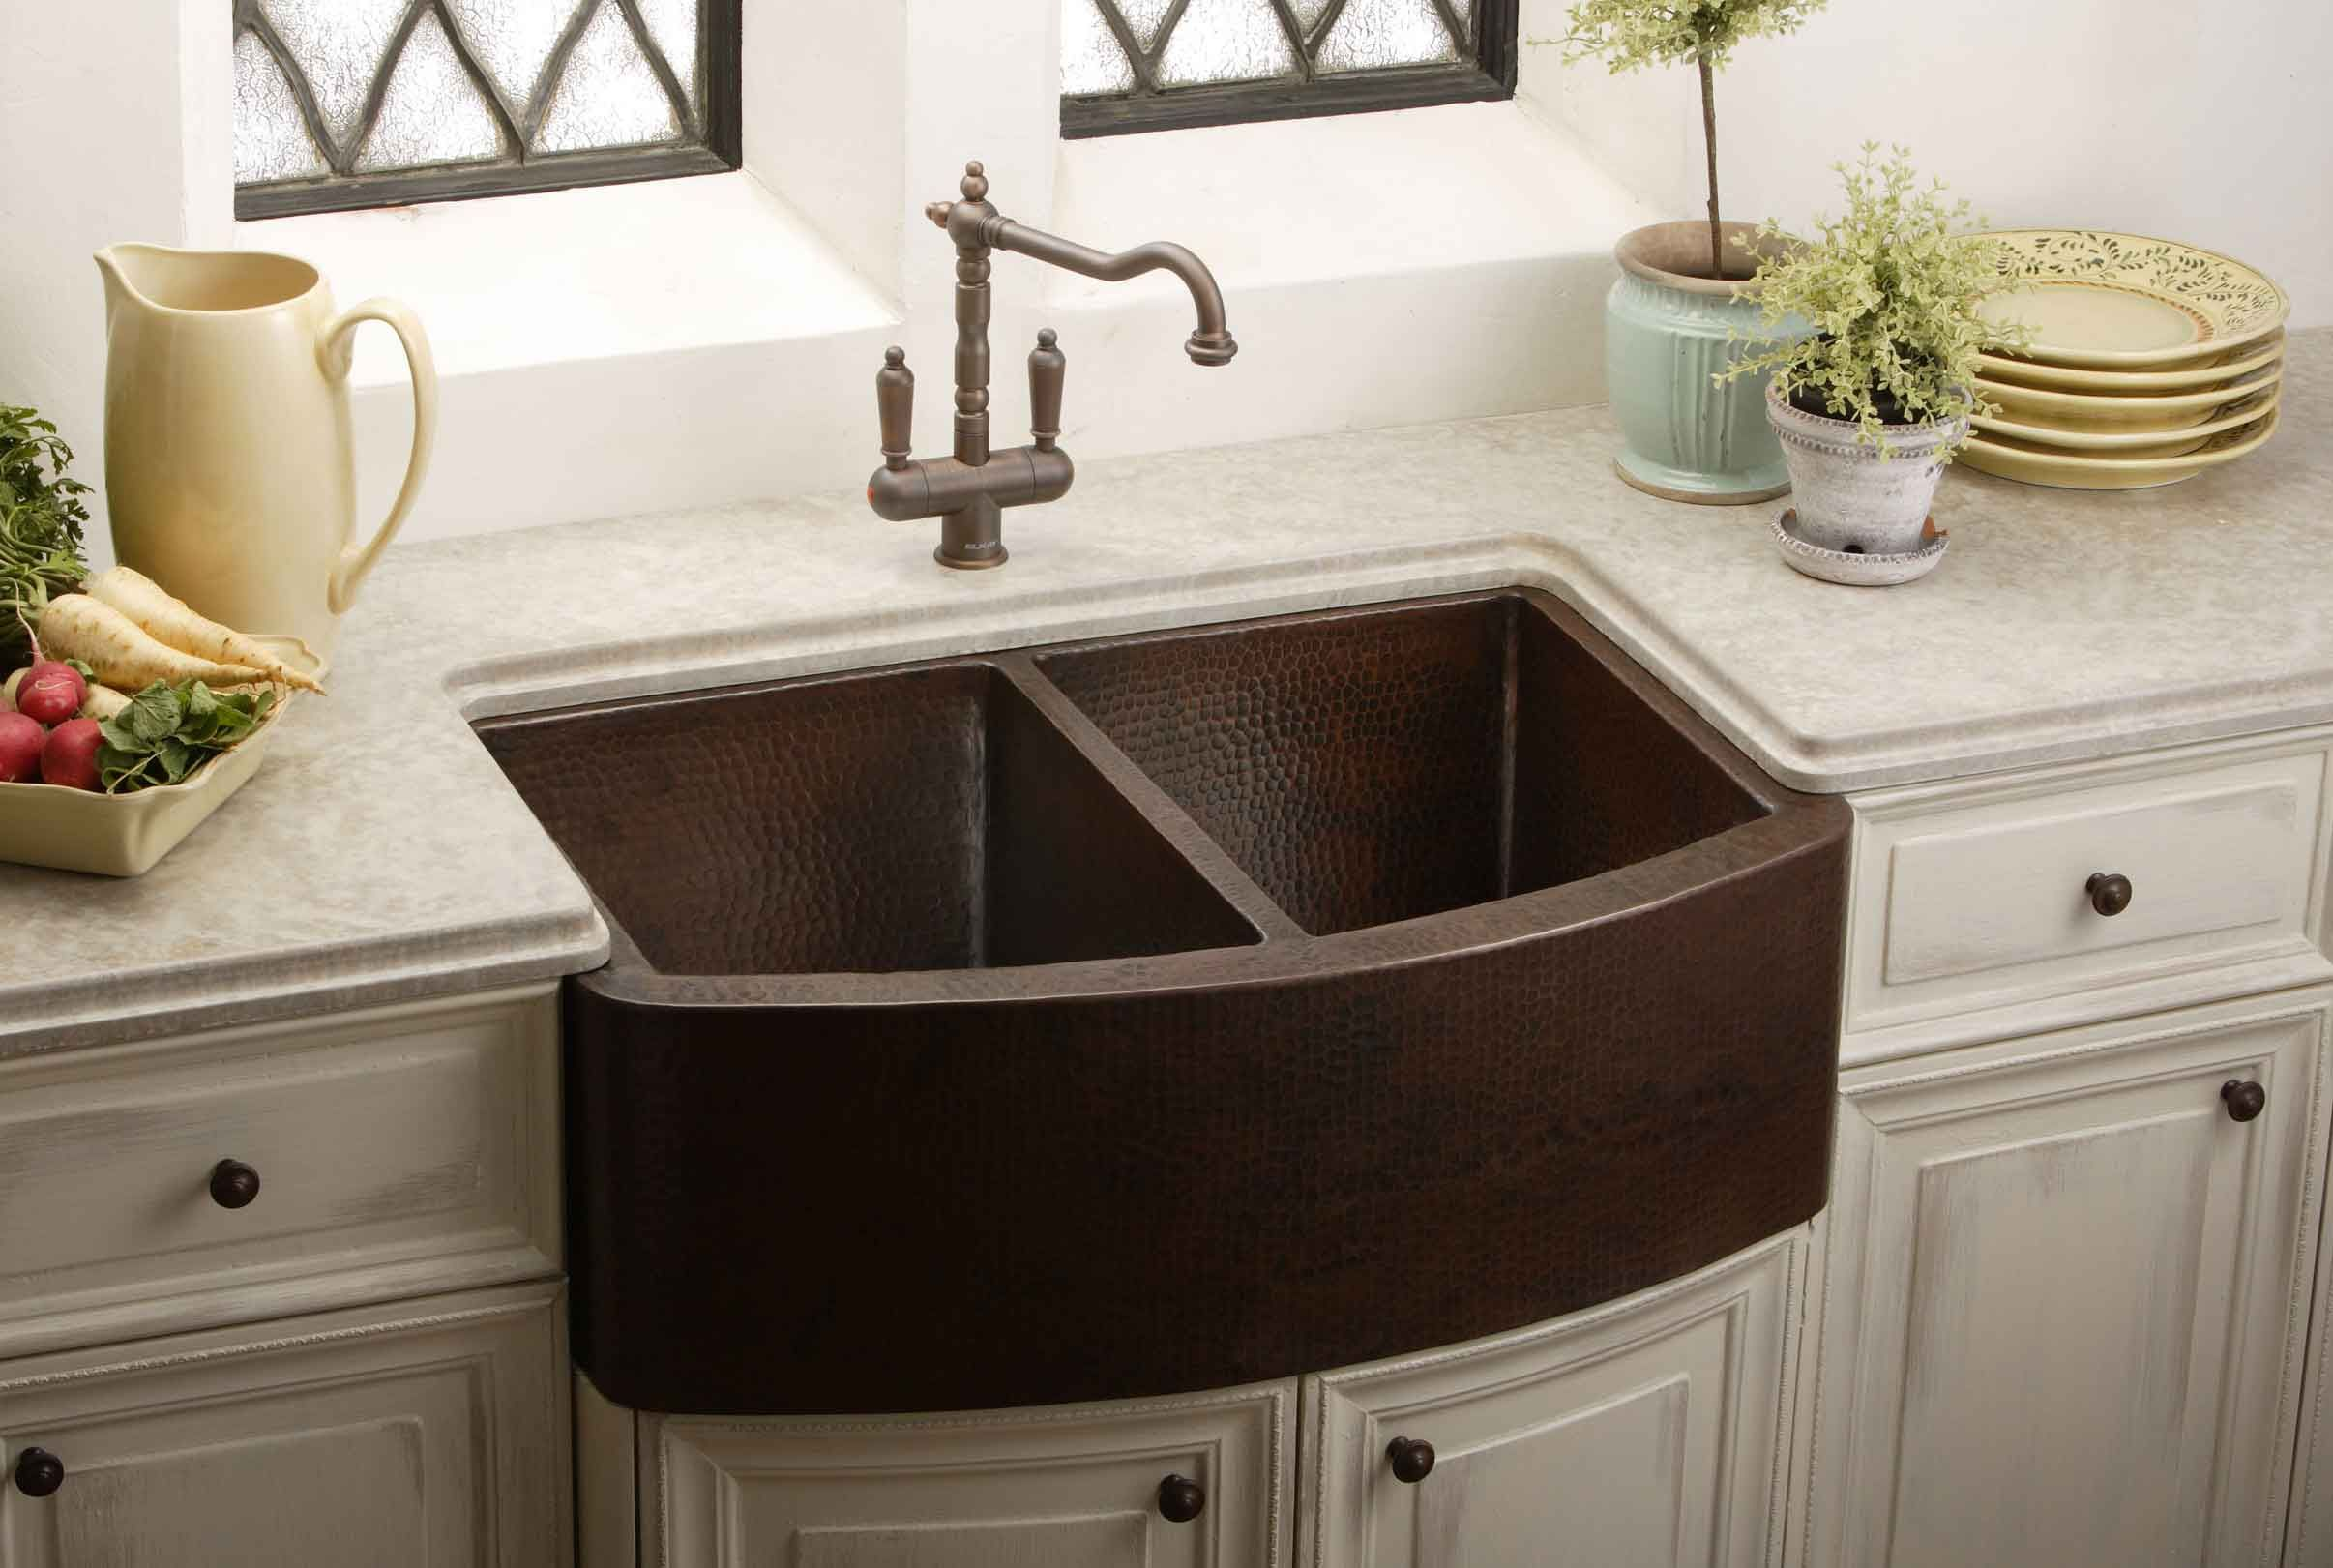 farmhouse sink   copper hammered farmhouse sink   copper hammered   sinks mixer taps and antique      rh   pinterest com